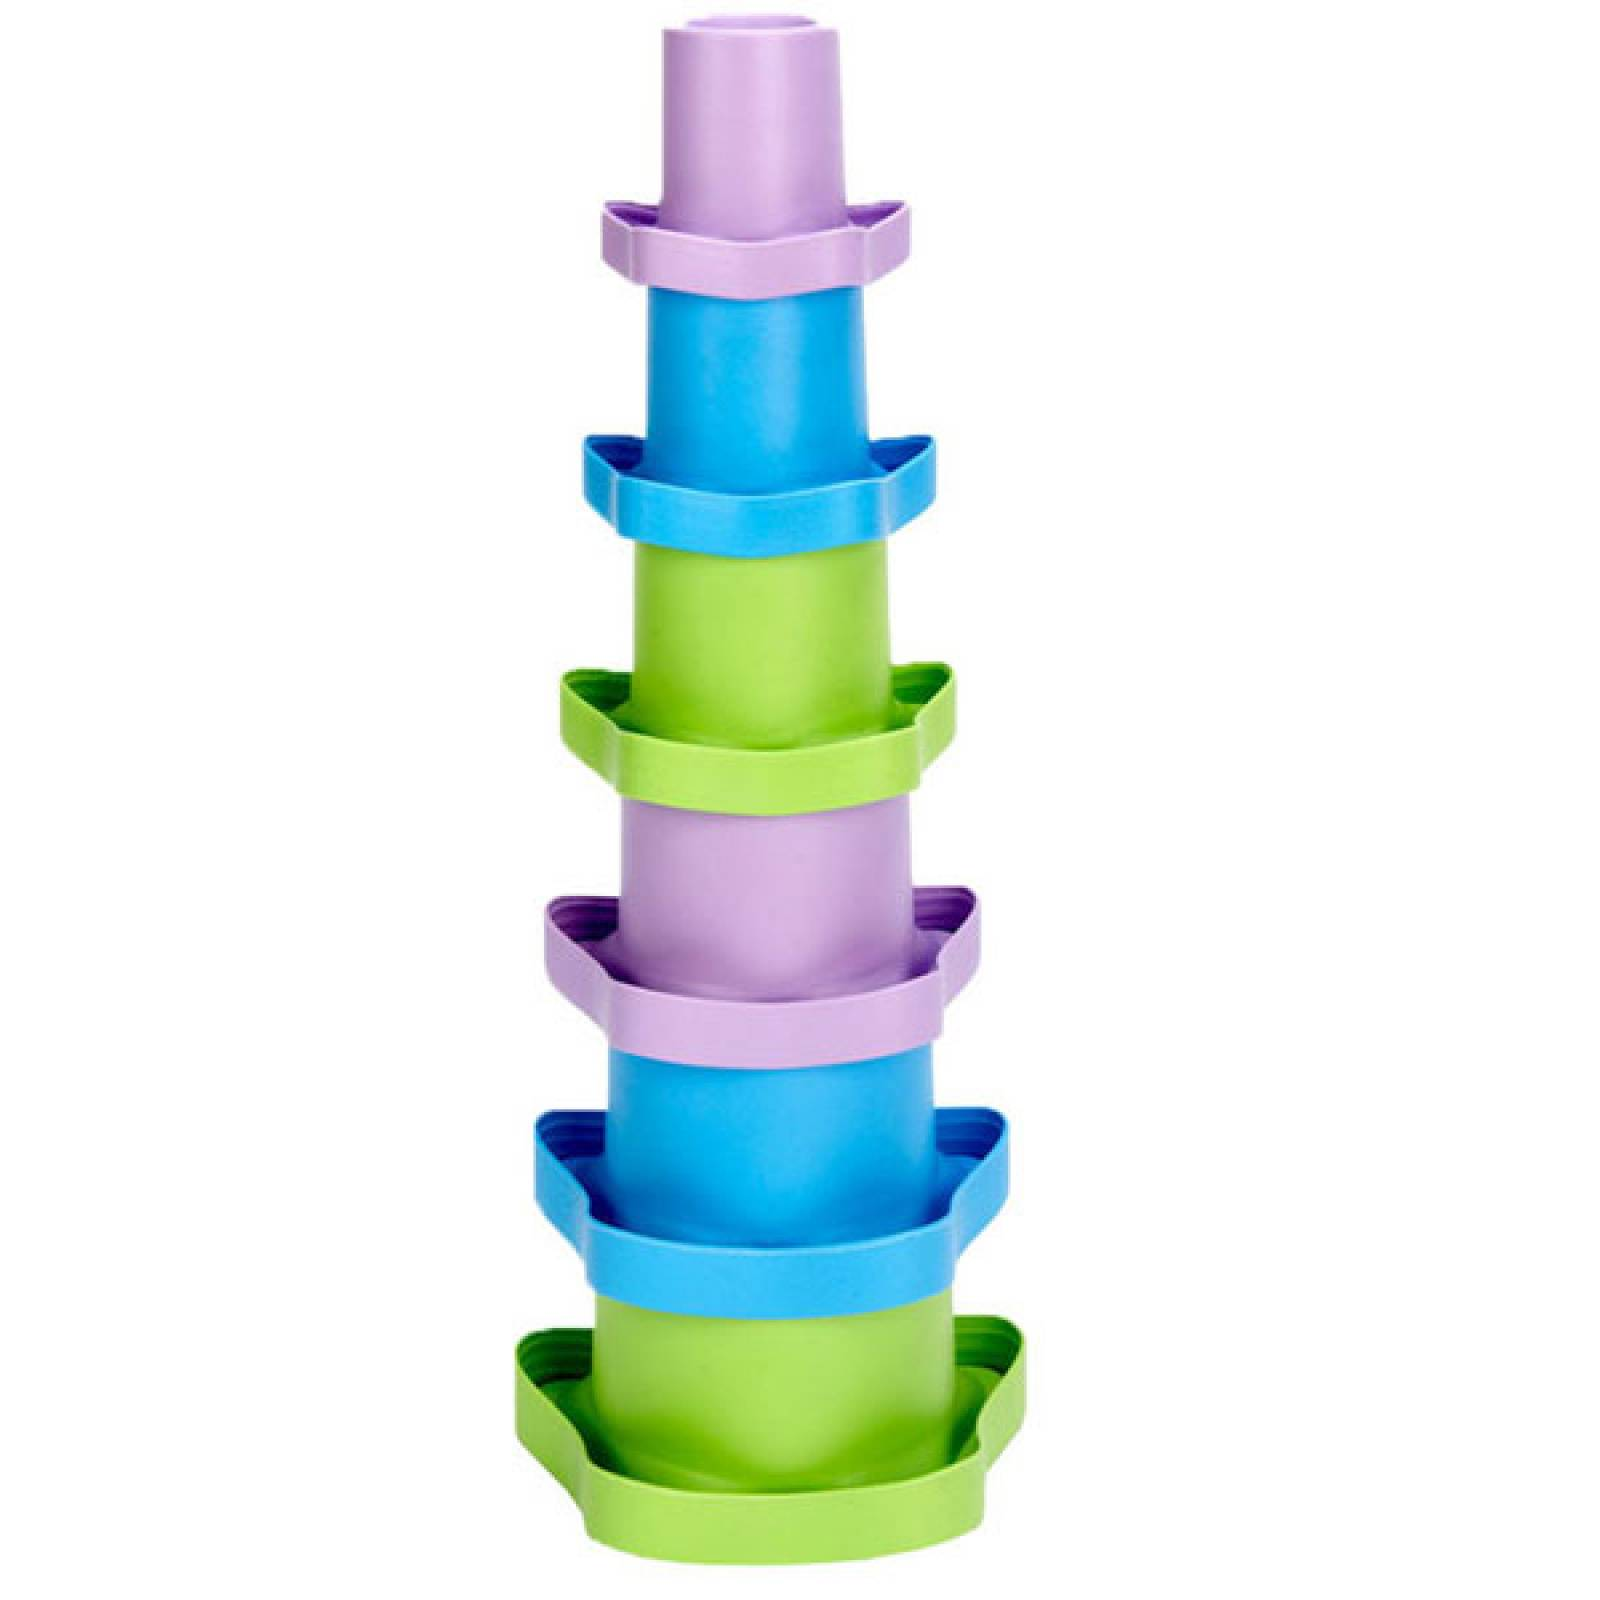 My First Stacking Cups By Green Toys - Recycled Plastic 6m+